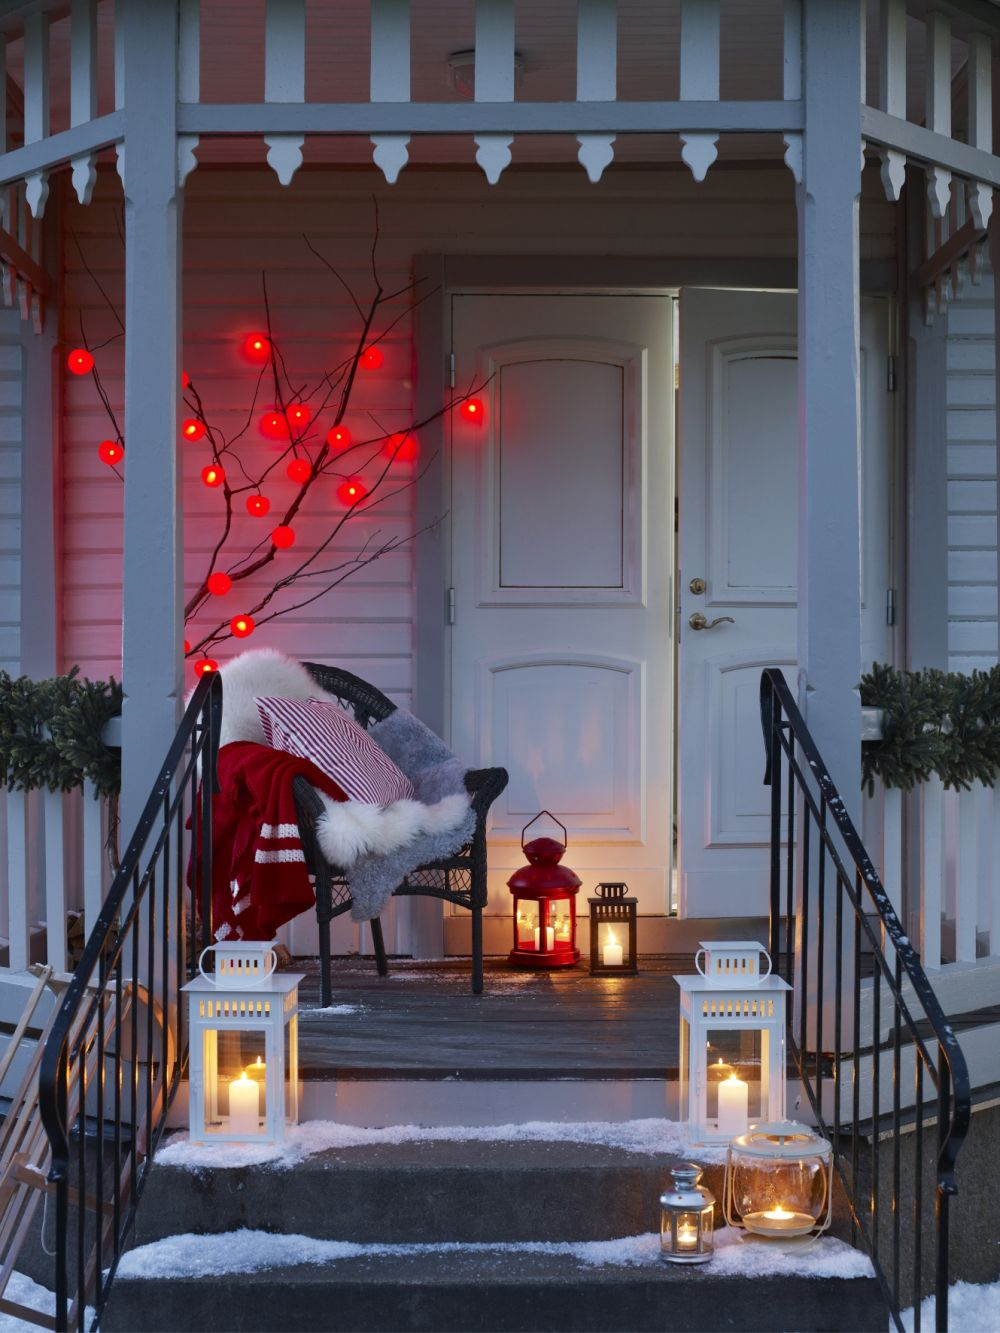 https://cdn.homedit.com/wp-content/uploads/2017/11/Holiday-porch-decor-various-lanterns.jpg